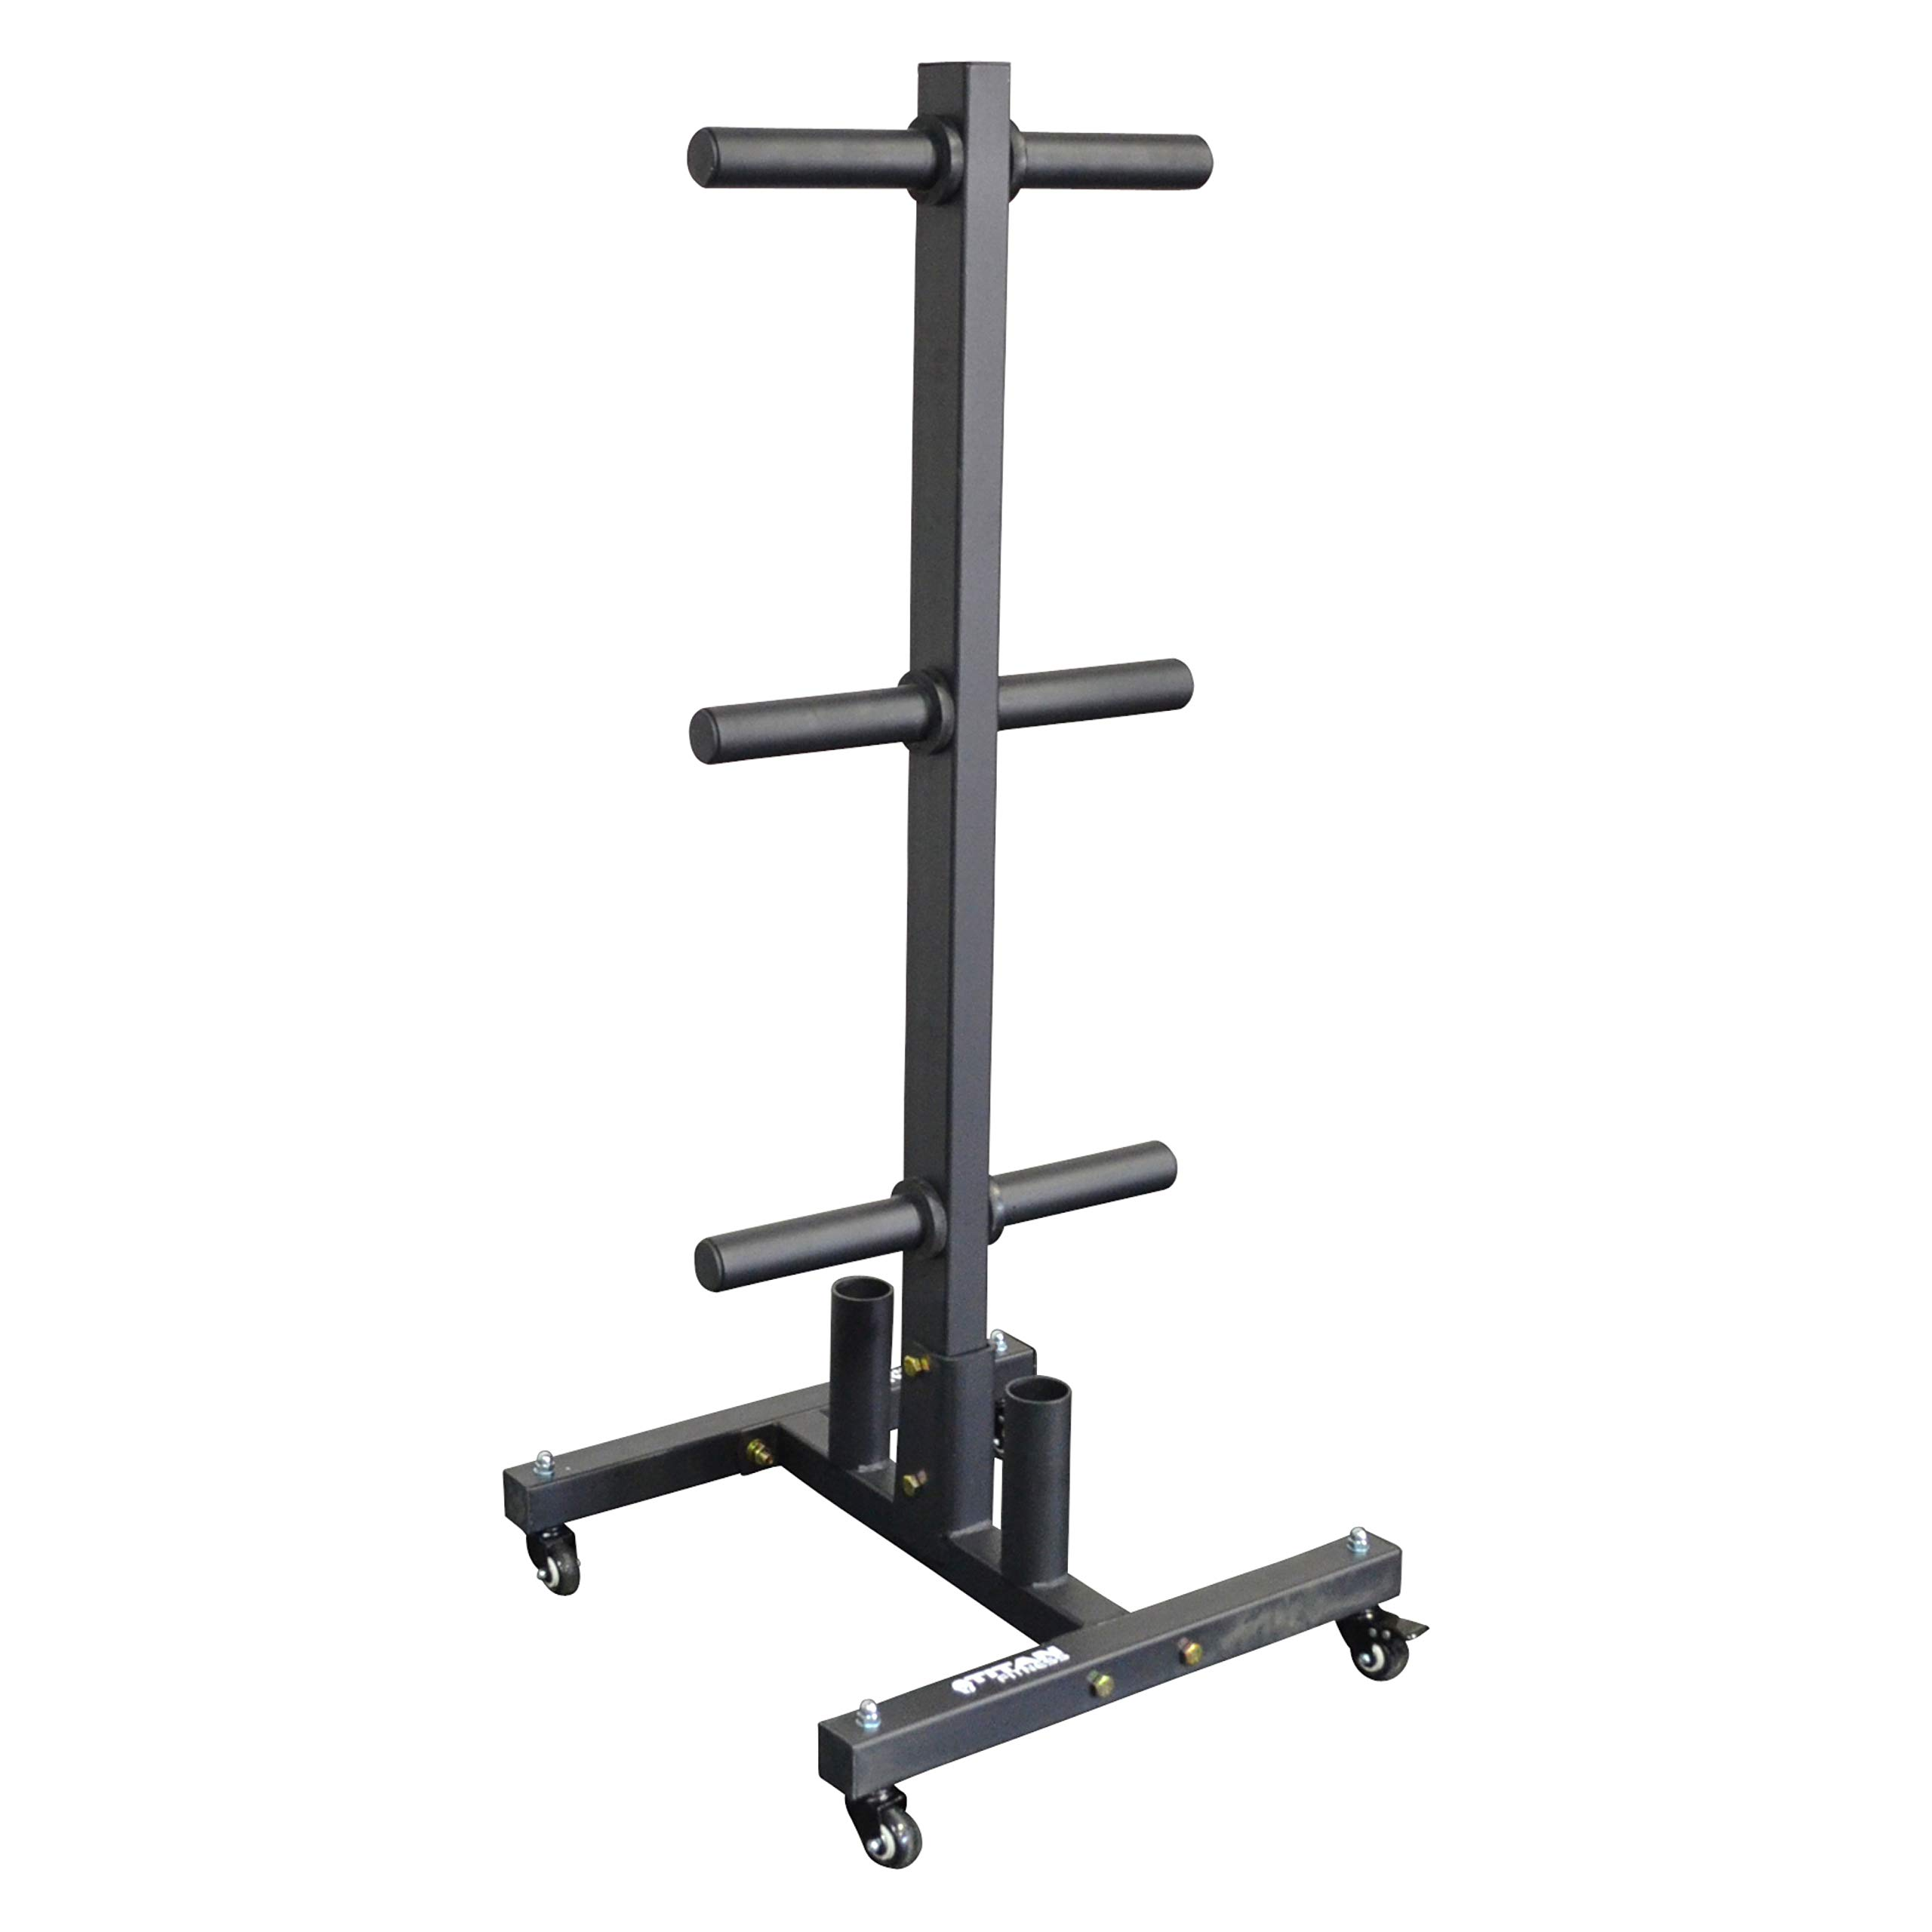 Titan Fitness Portable Plate & Barbell Storage Tree by Titan Distributors Inc.